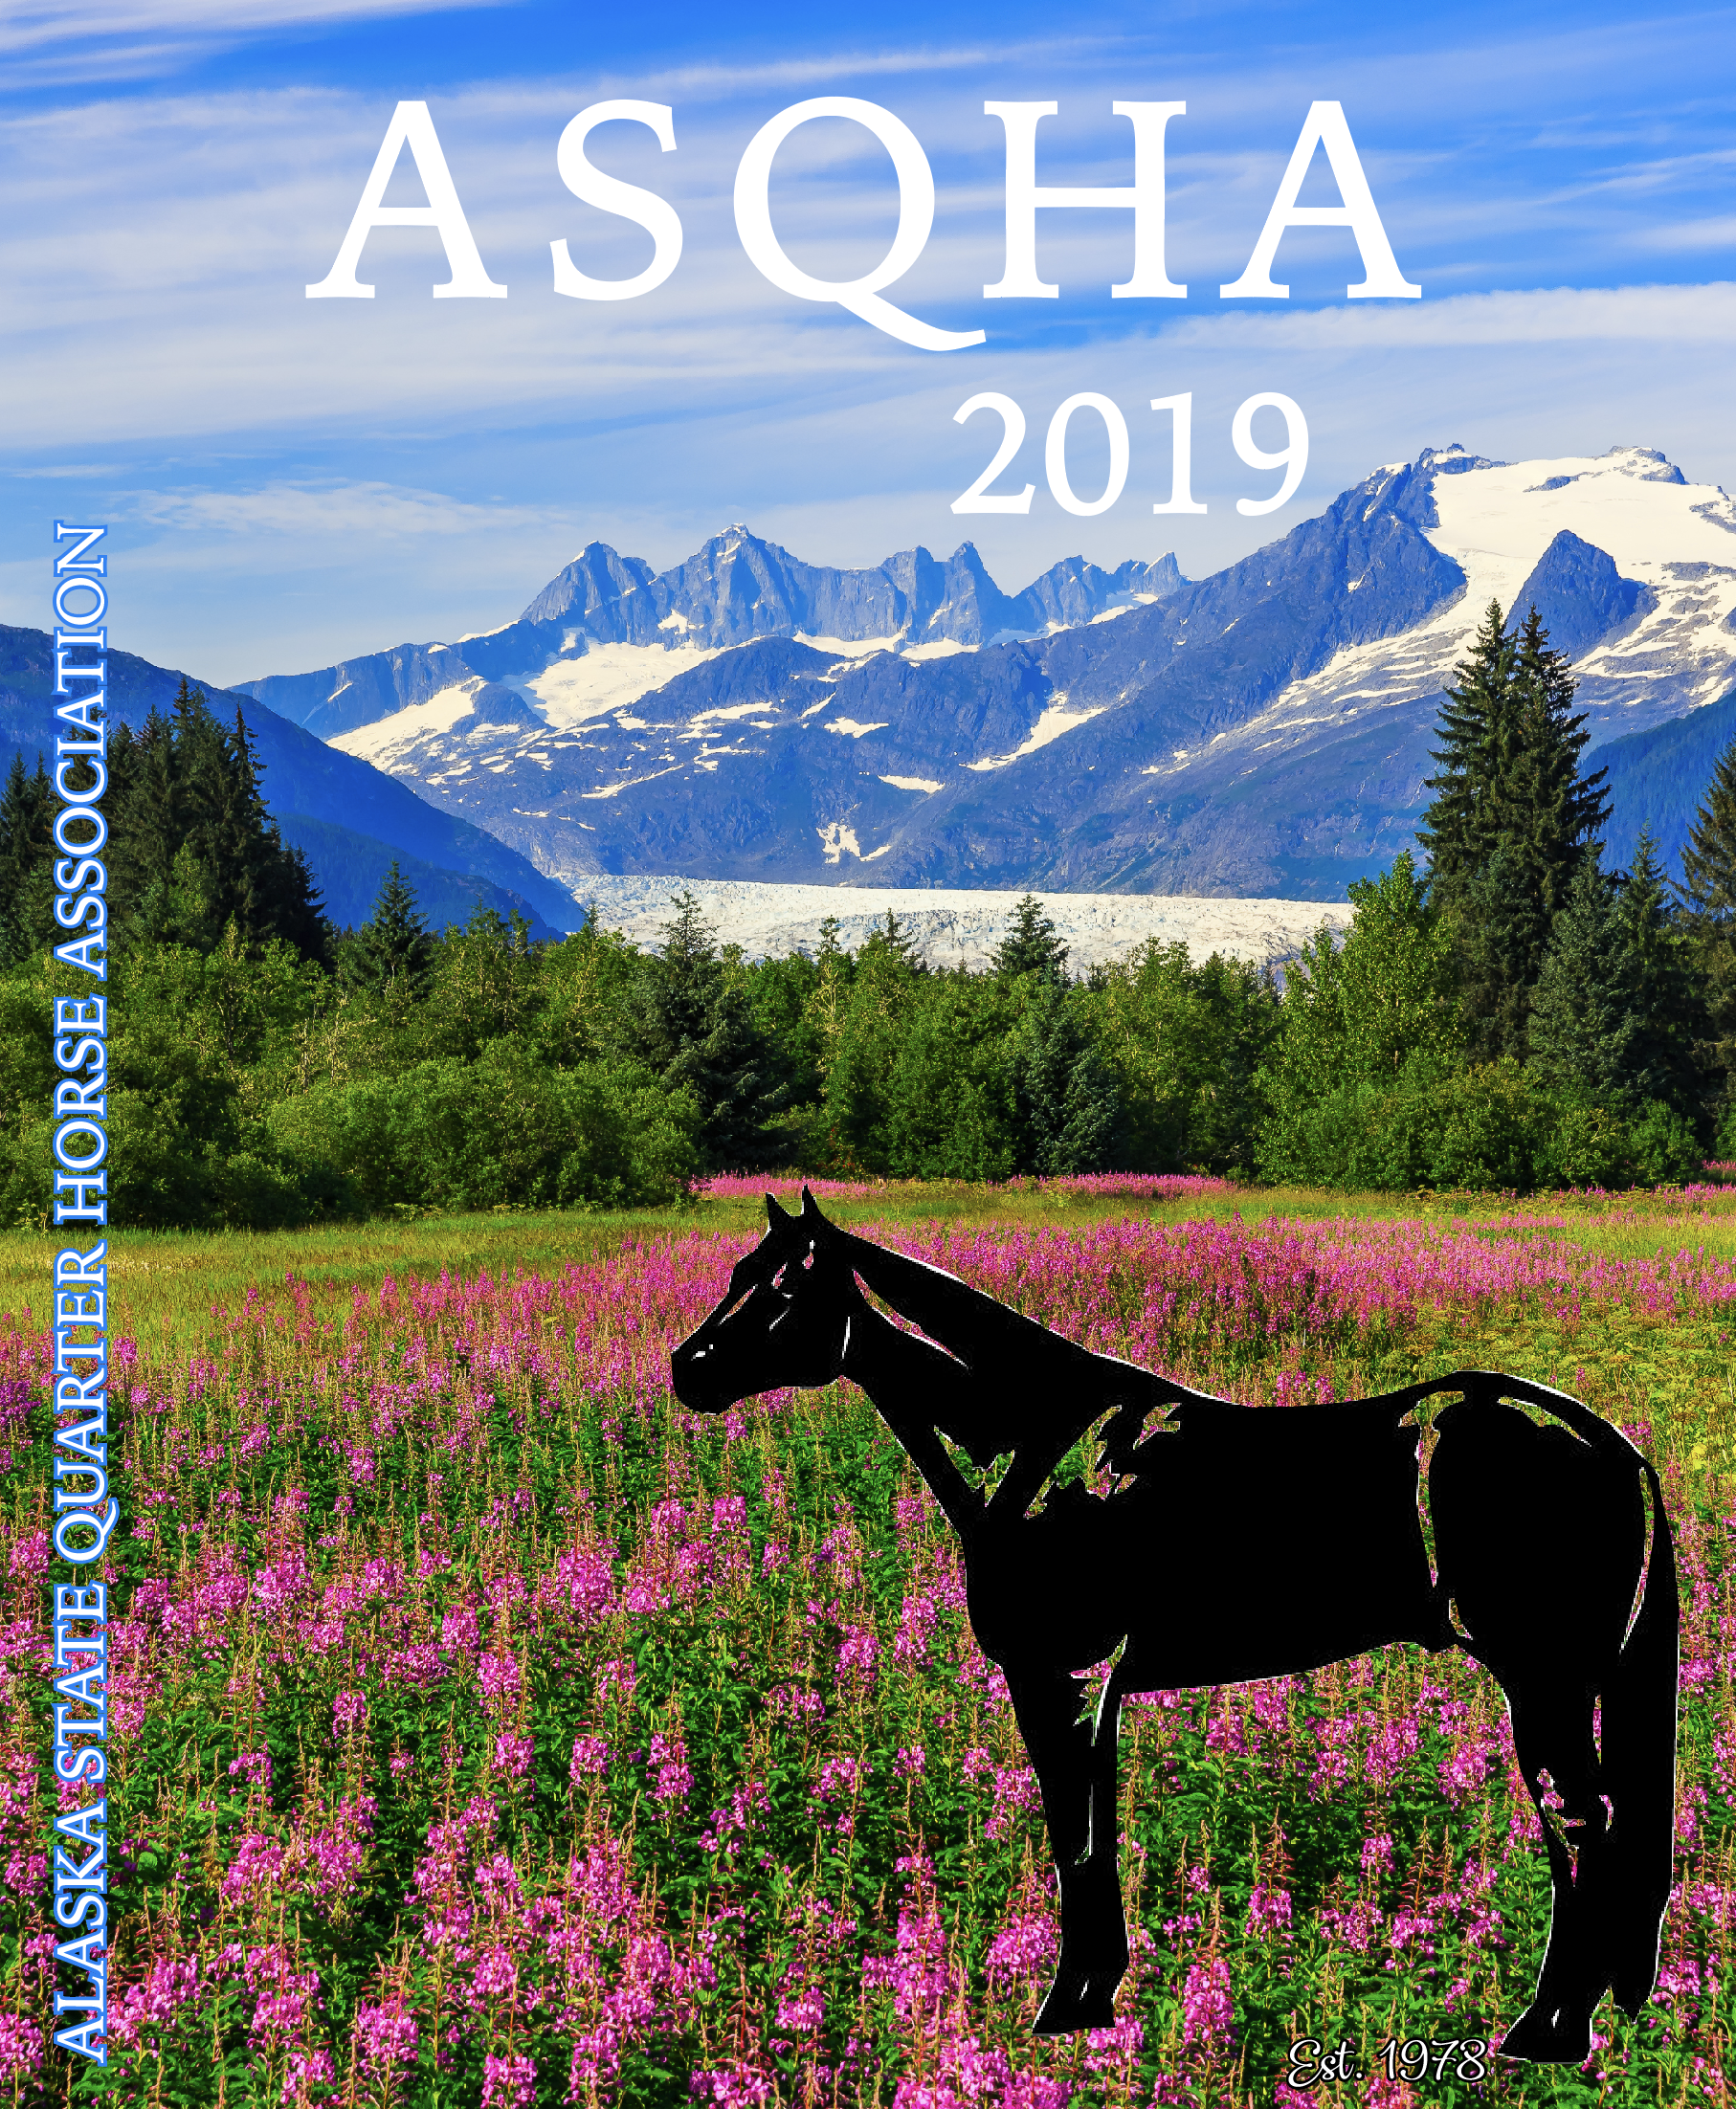 2019 SHOW BOOK COVER